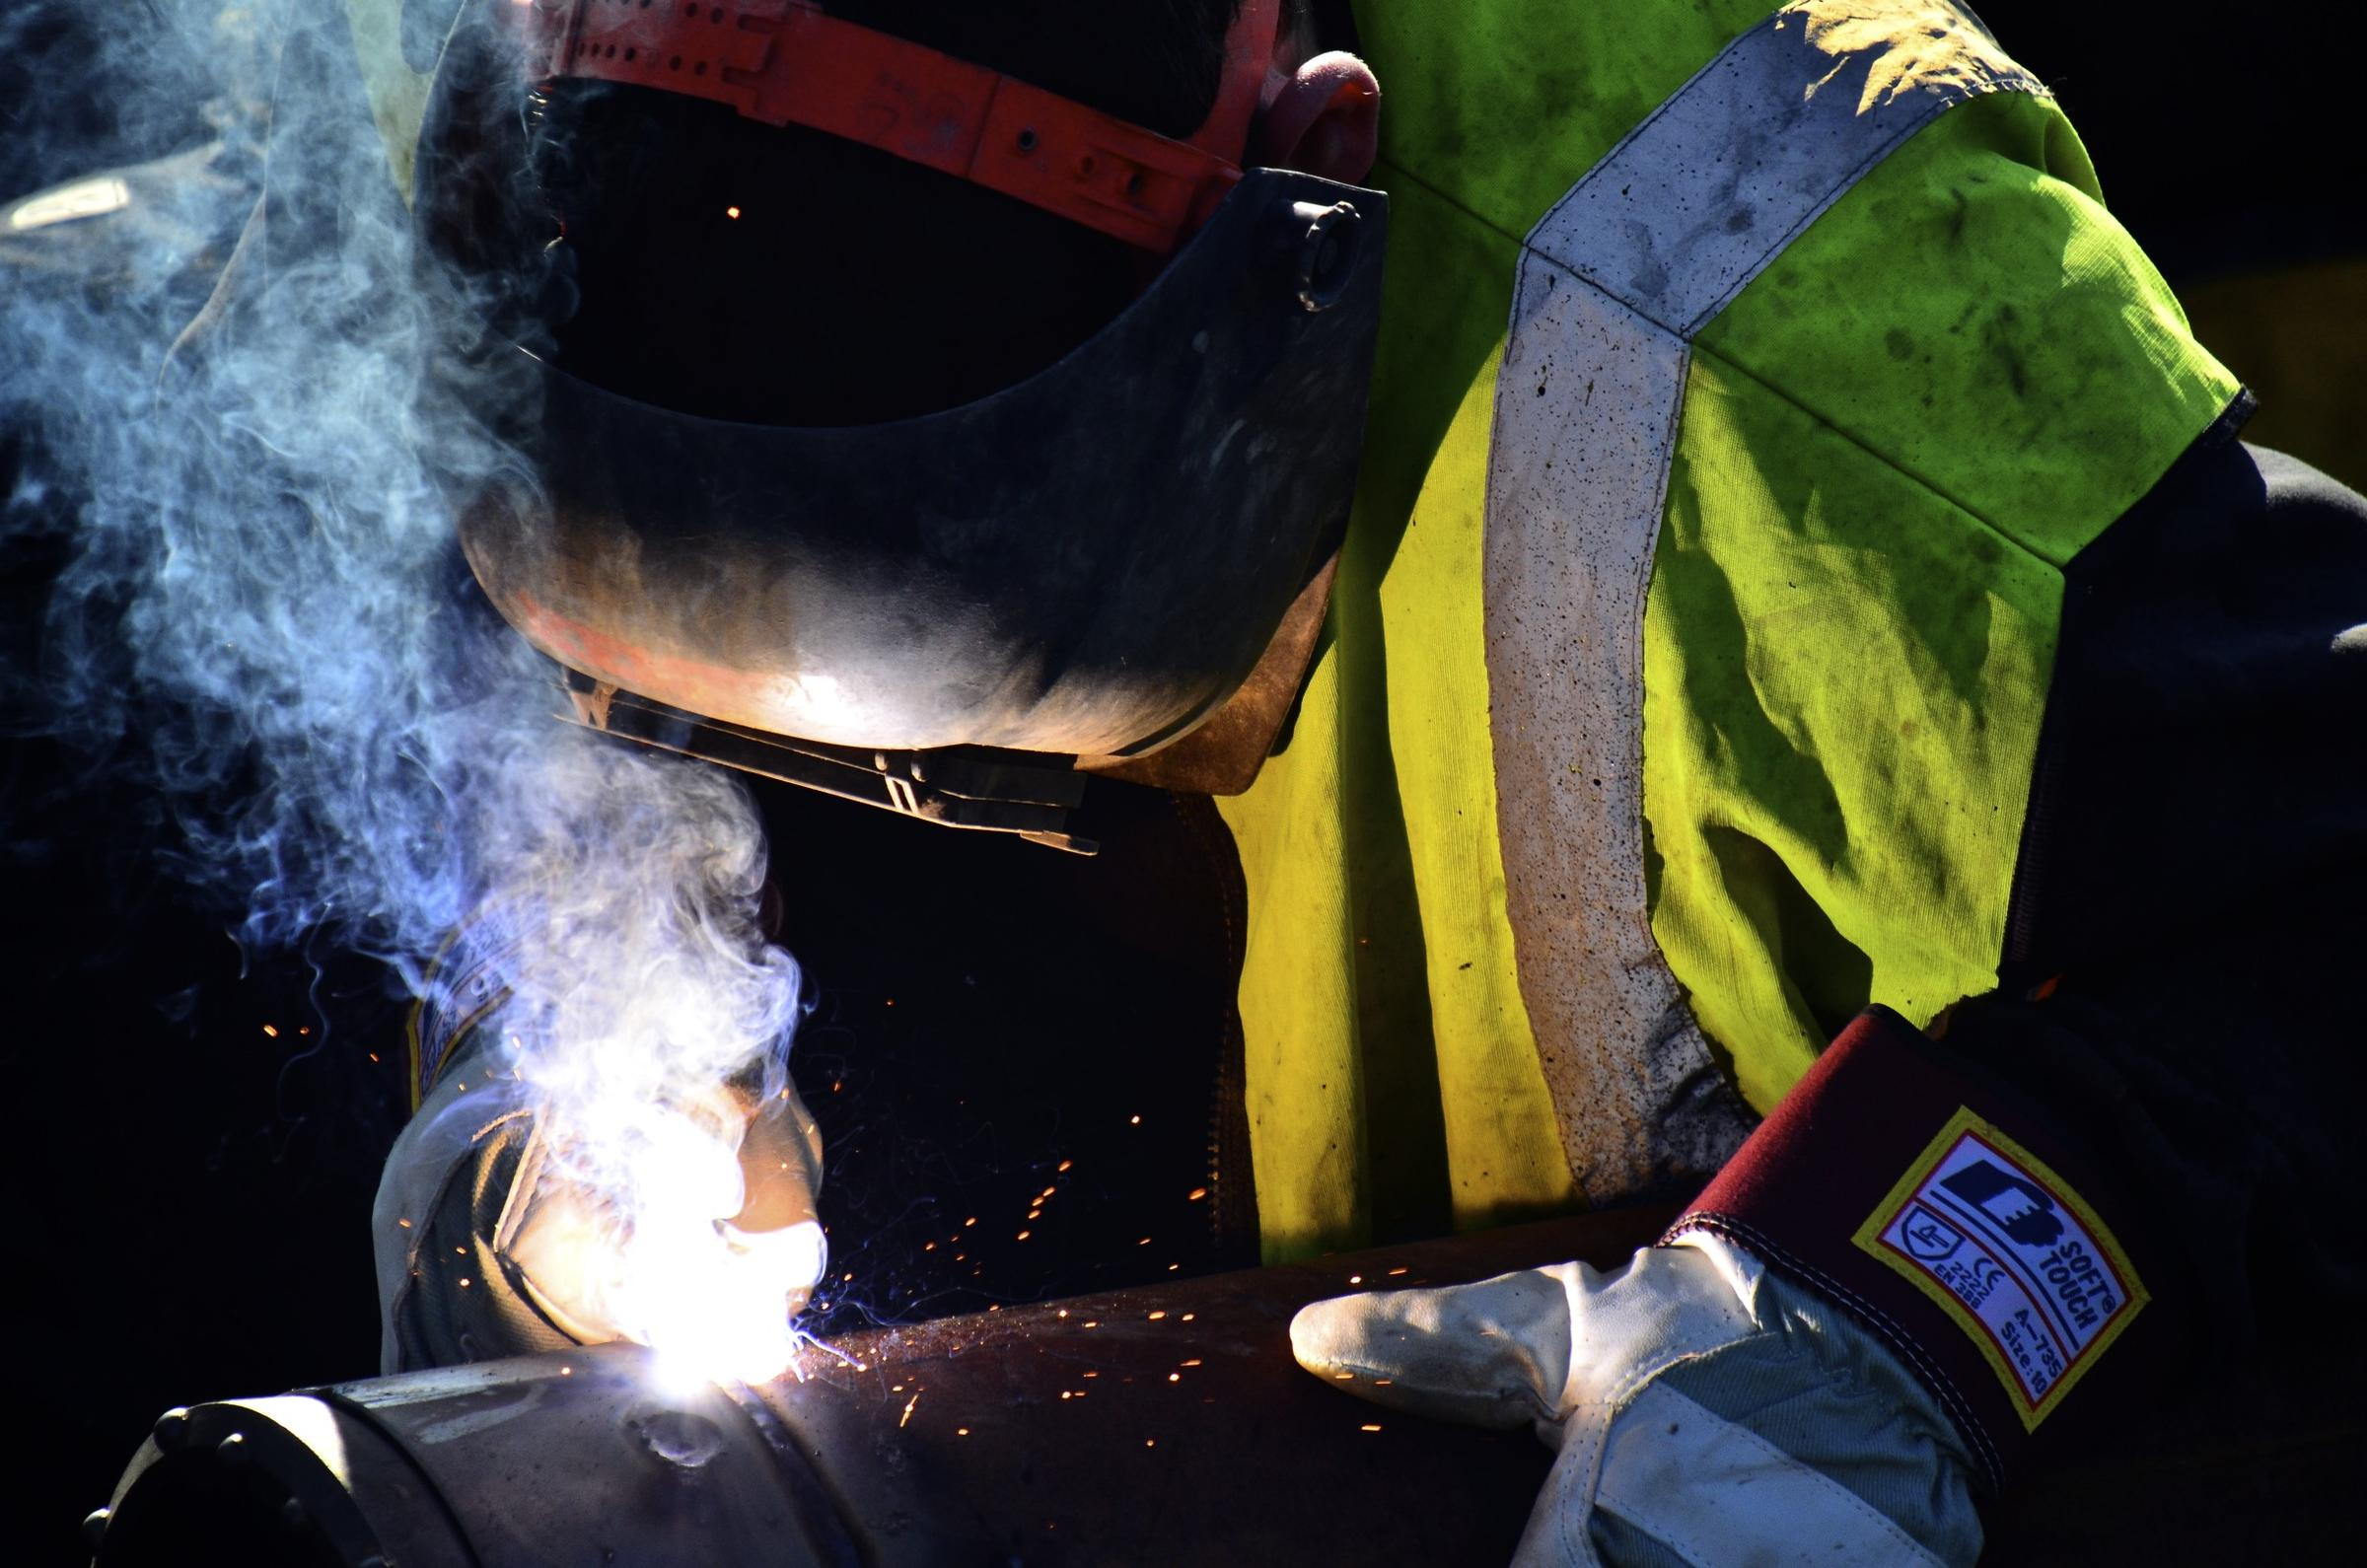 Ccac Brings Back Midnight Welding In Anticipation Of Cracker Plants